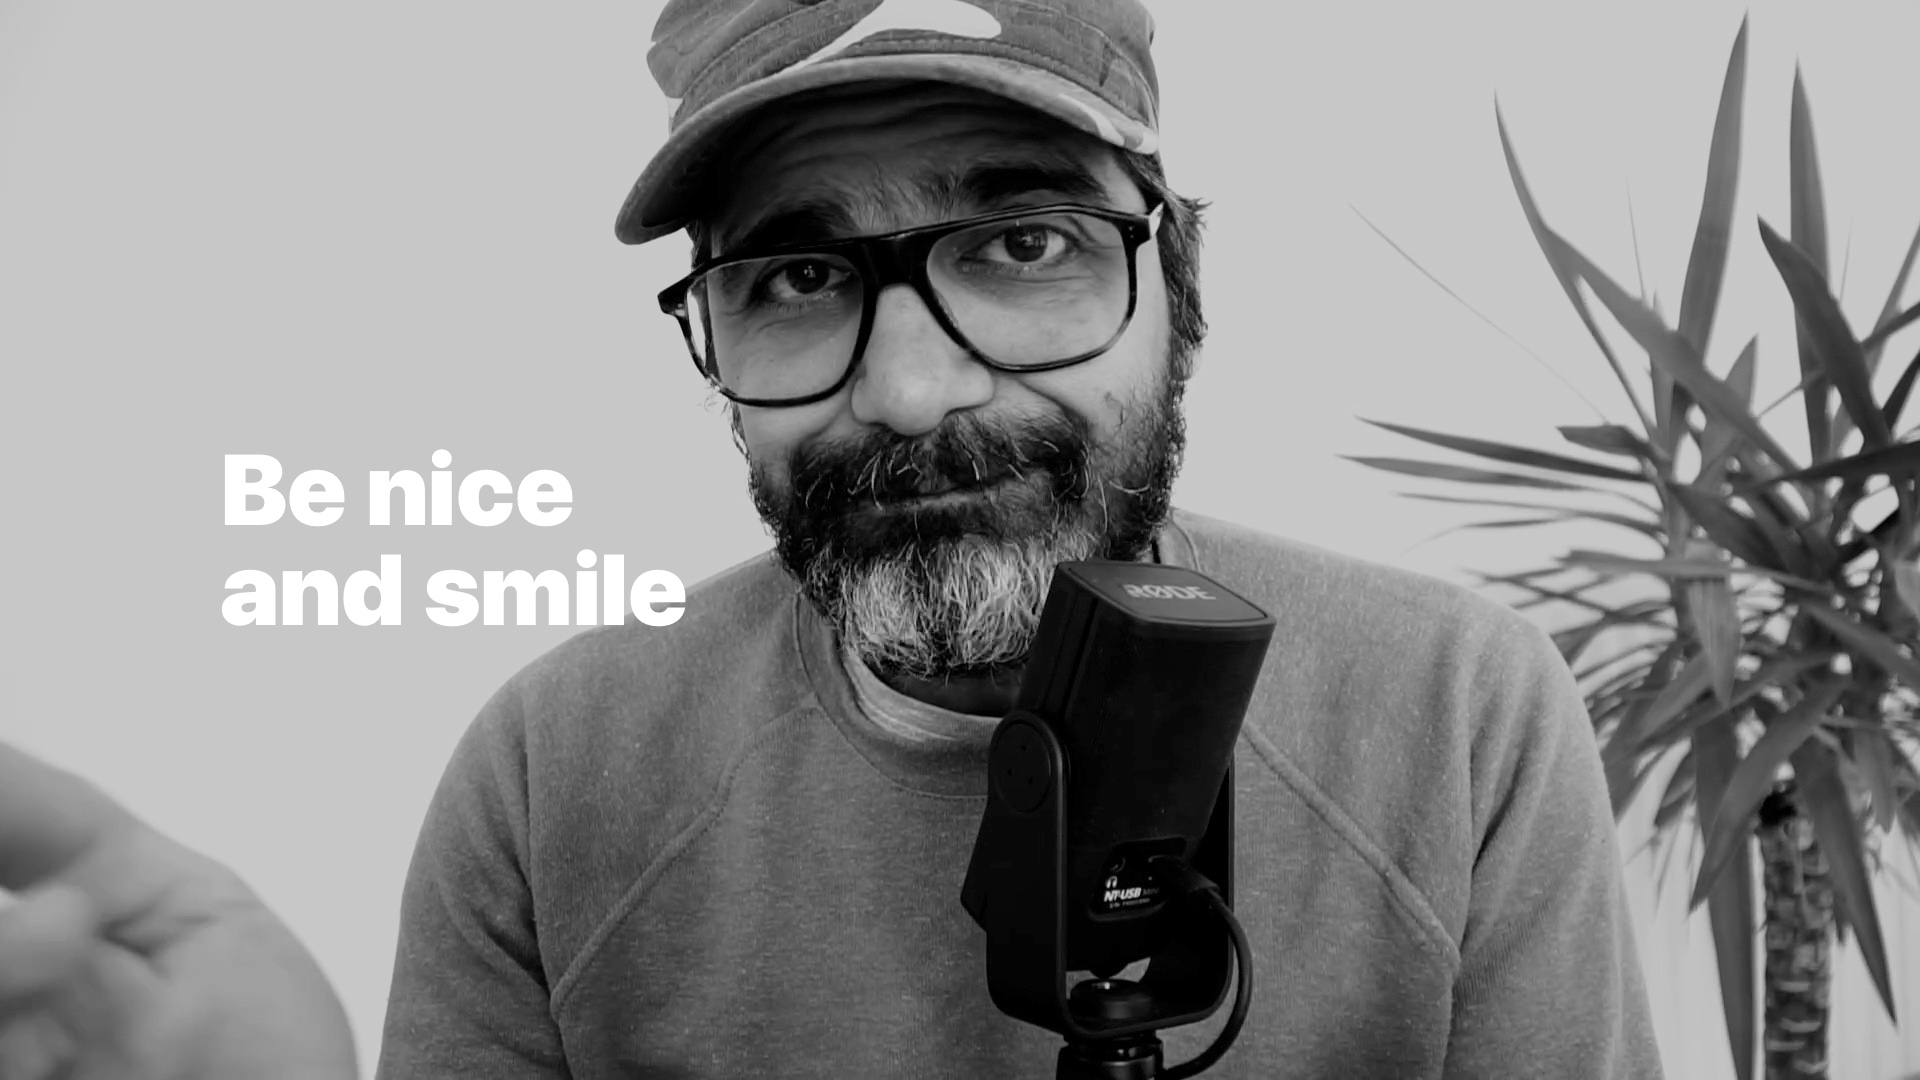 Be nice and smile